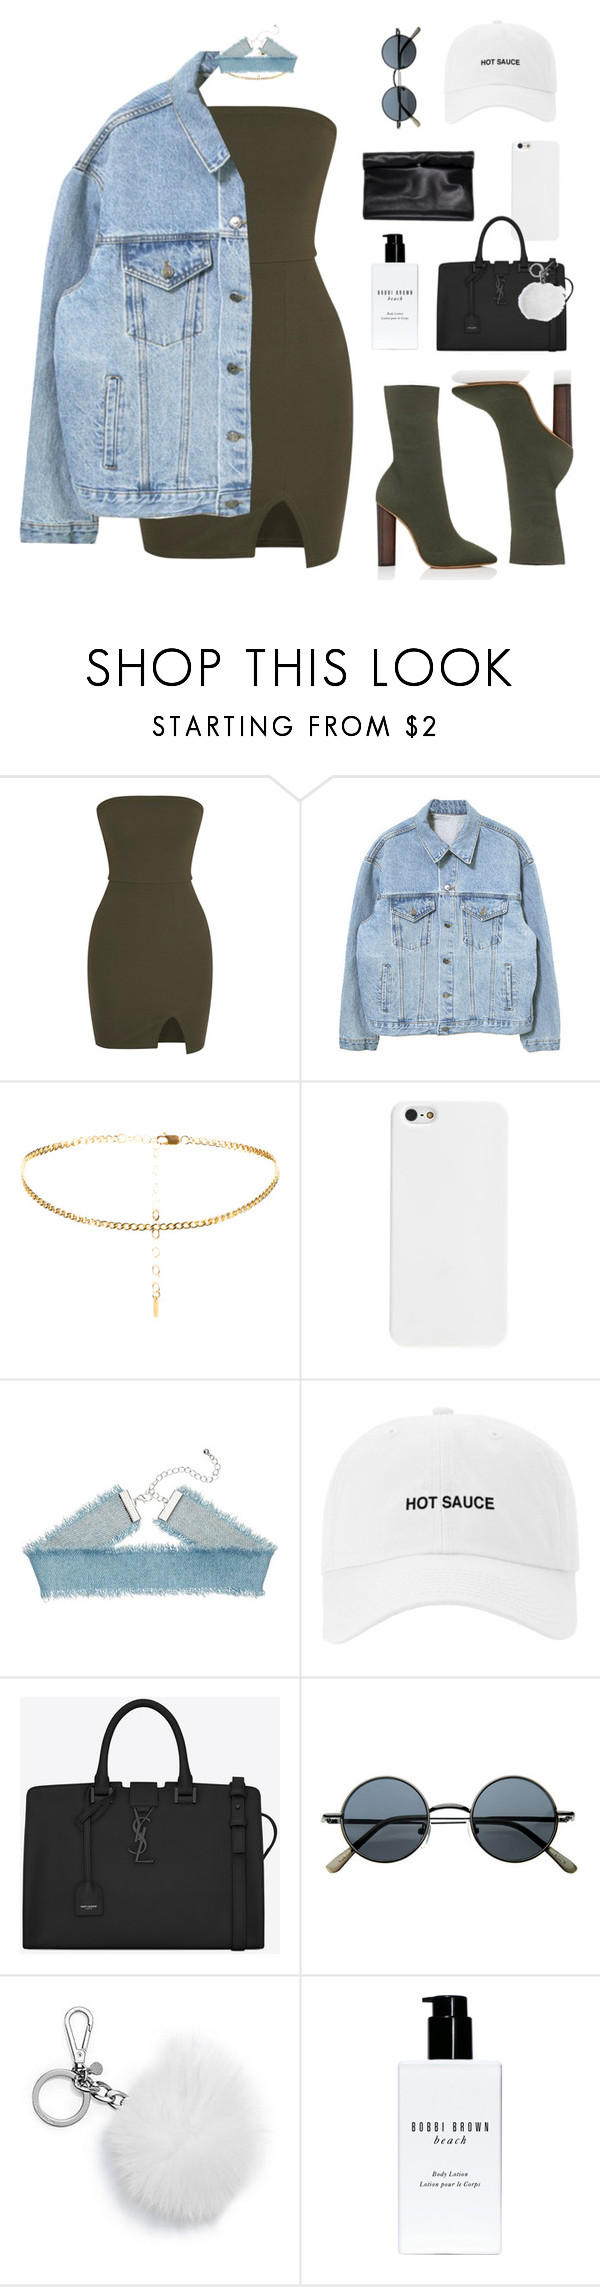 """""""yesterday"""" by taniabiebz ❤ liked on Polyvore featuring adidas, Yves Saint Laurent, MICHAEL Michael Kors and Bobbi Brown Cosmetics"""